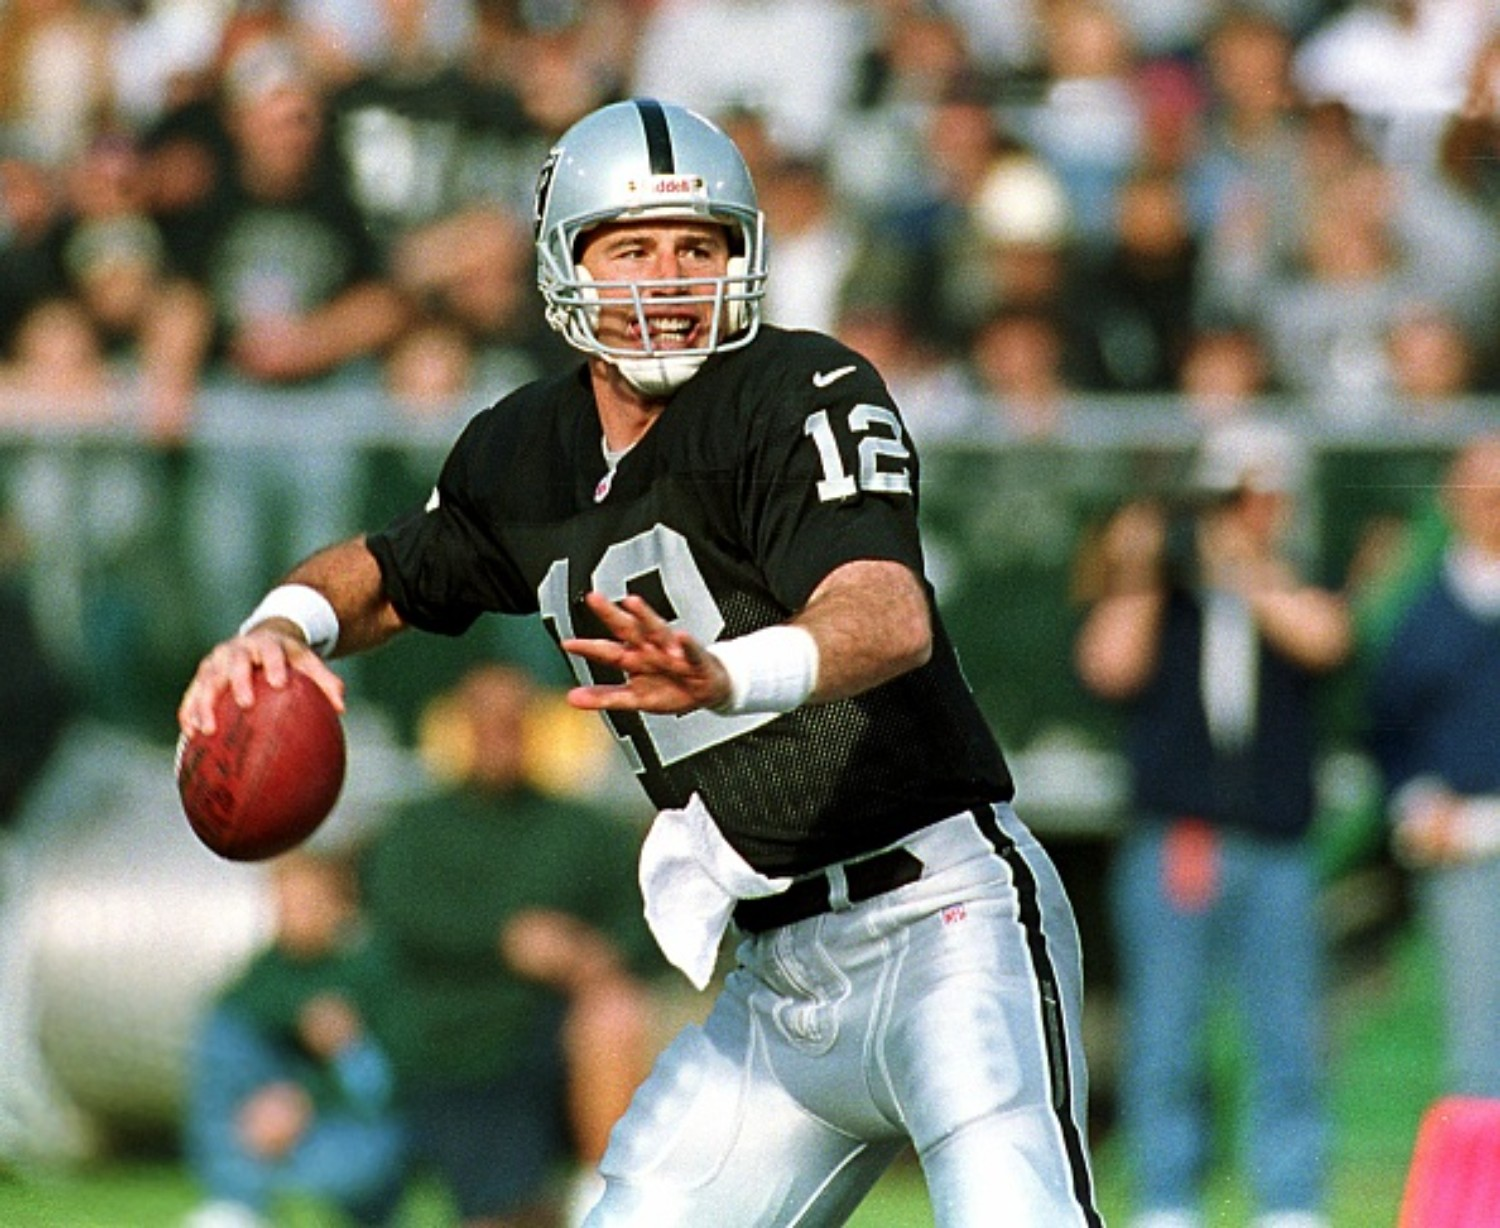 Rich Gannon had a successful career in the NFL